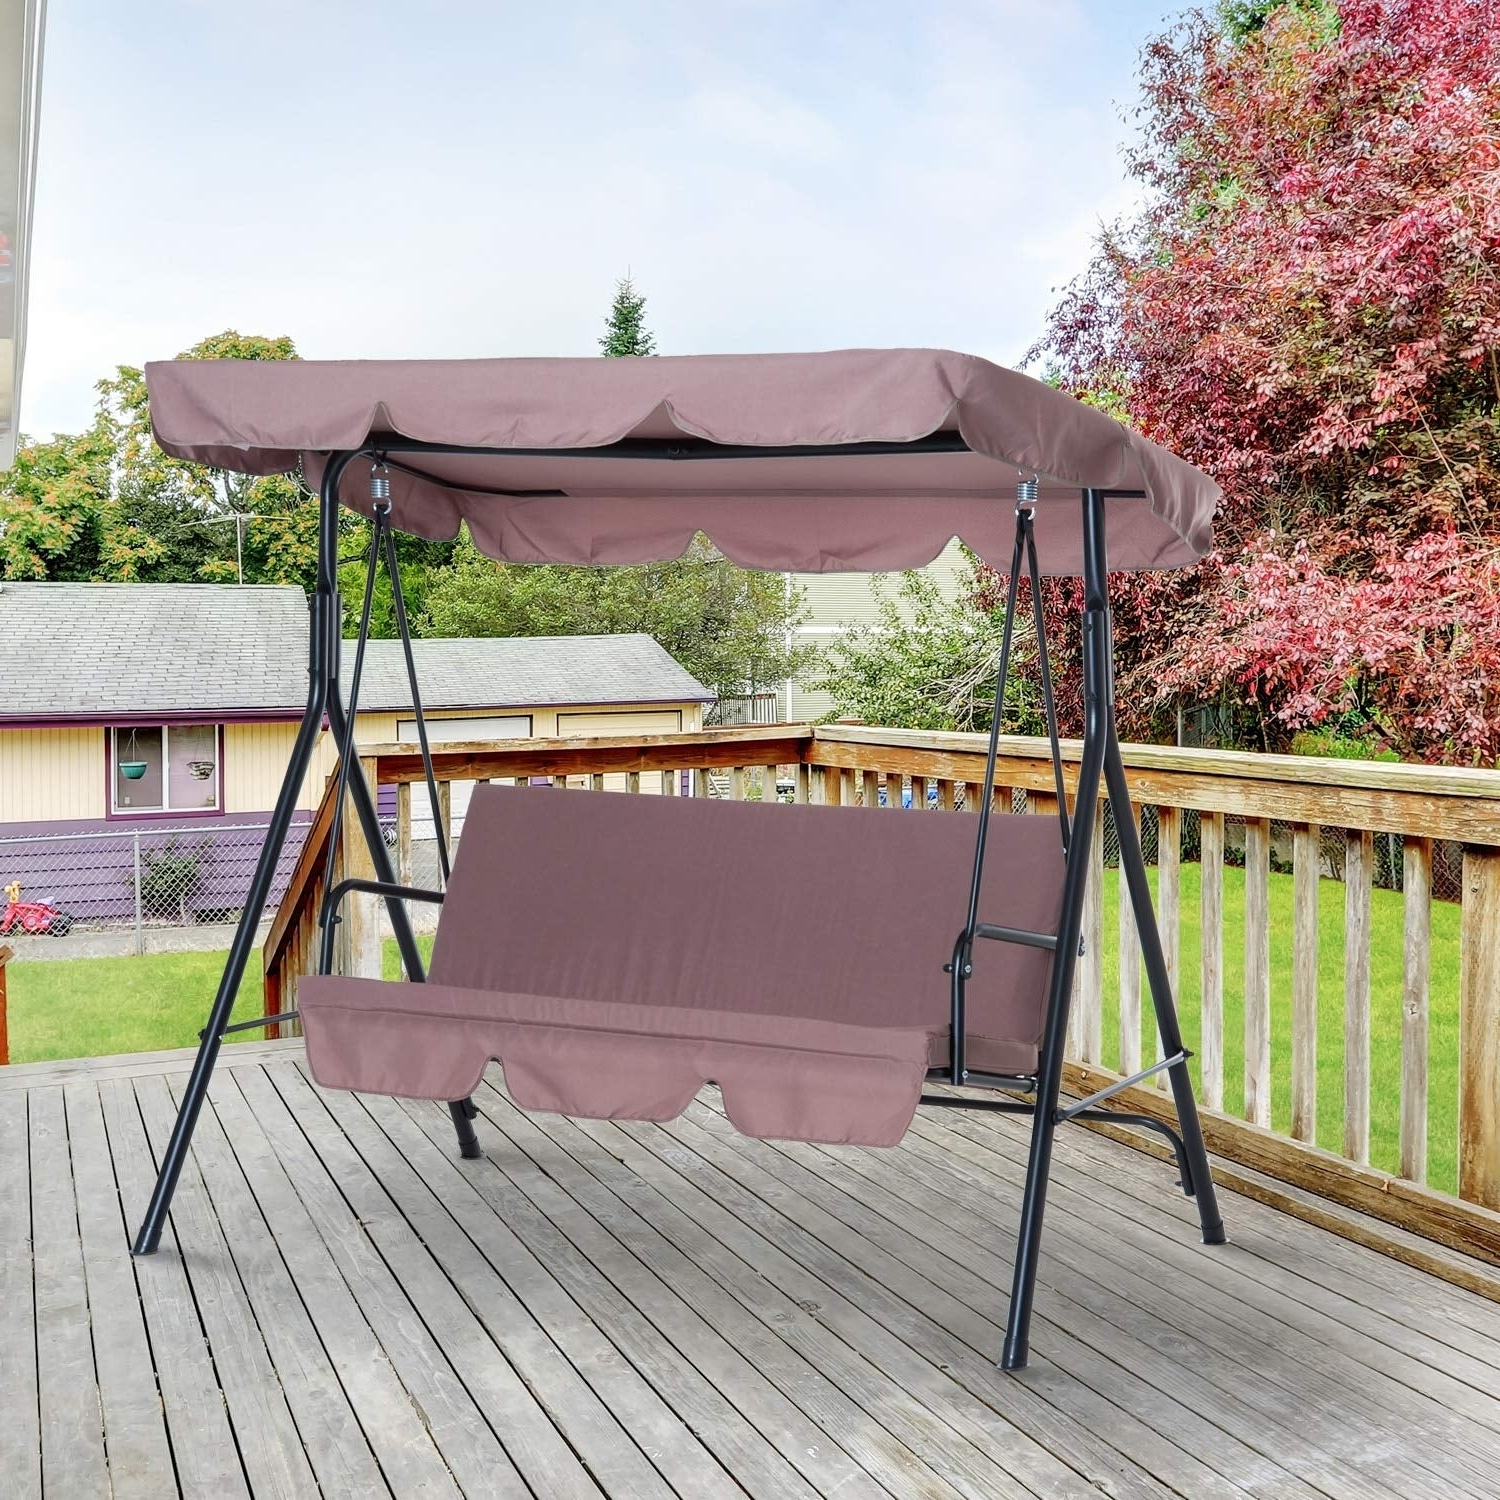 Popular 3 Person Outdoor Porch Swings With Stand Inside Outsunny 3 Person Steel Fabric Outdoor Porch Swing Canopy With Stand – Brown (View 14 of 25)